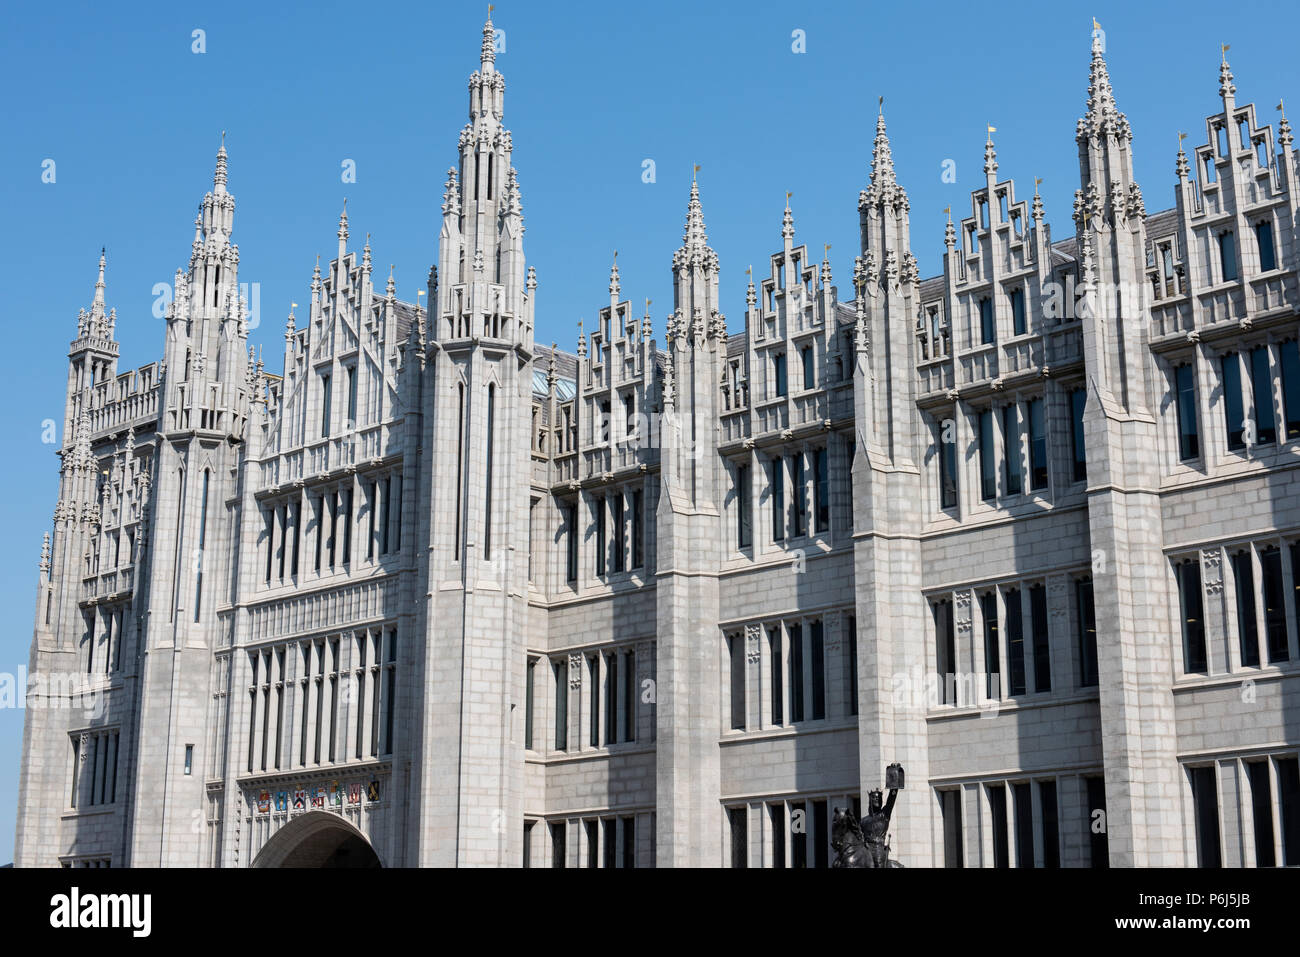 United Kingdom, Scotland, Aberdeen, once known as Granite City, historic Old Aberdeen. Queen Street, Marischal College. - Stock Image